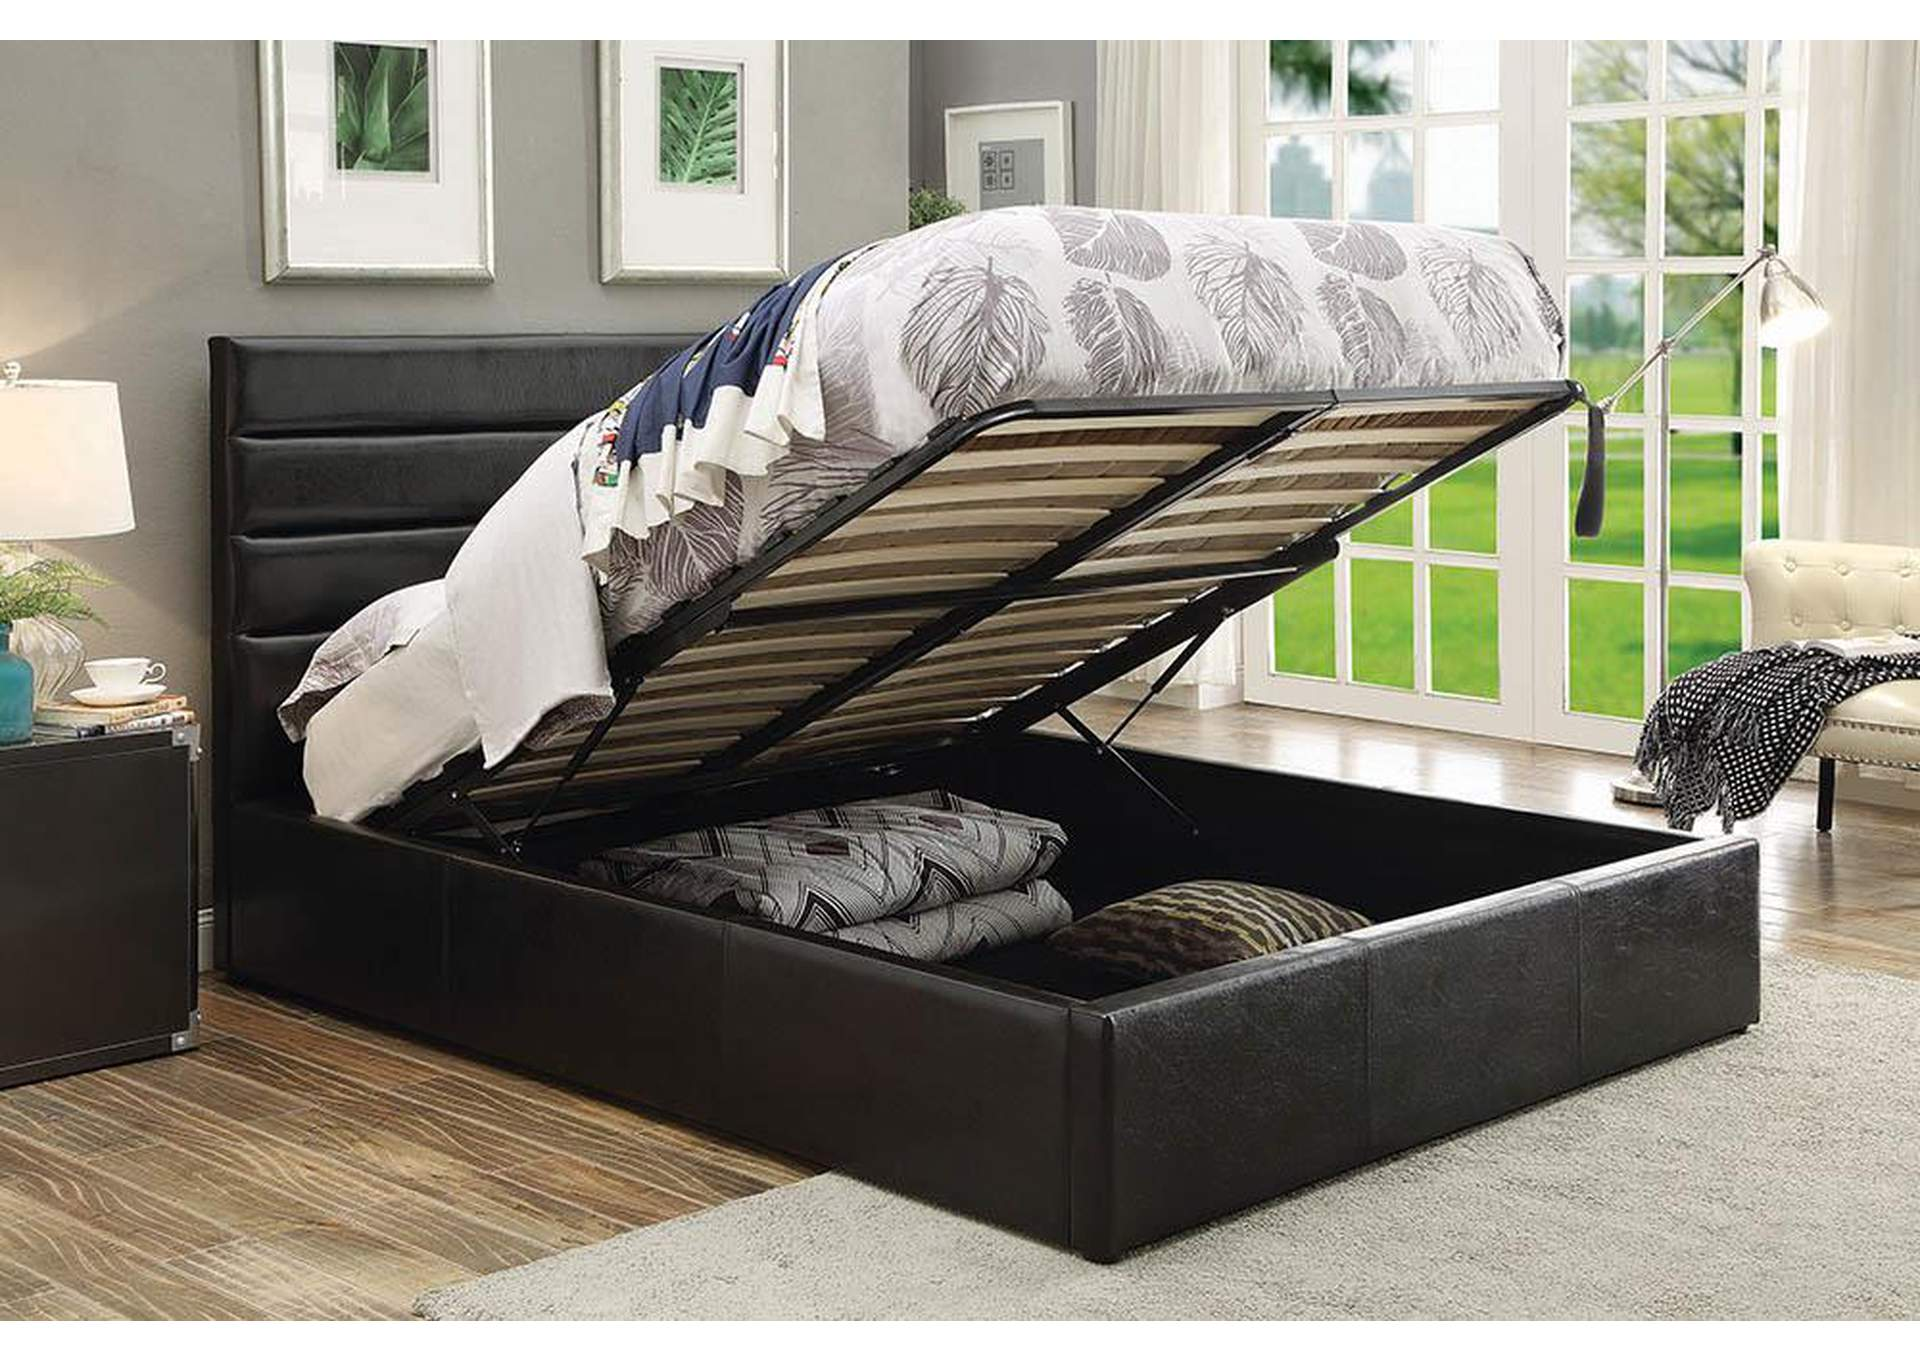 Riverbend Black Queen Upholstered Storage Bed,Coaster Furniture